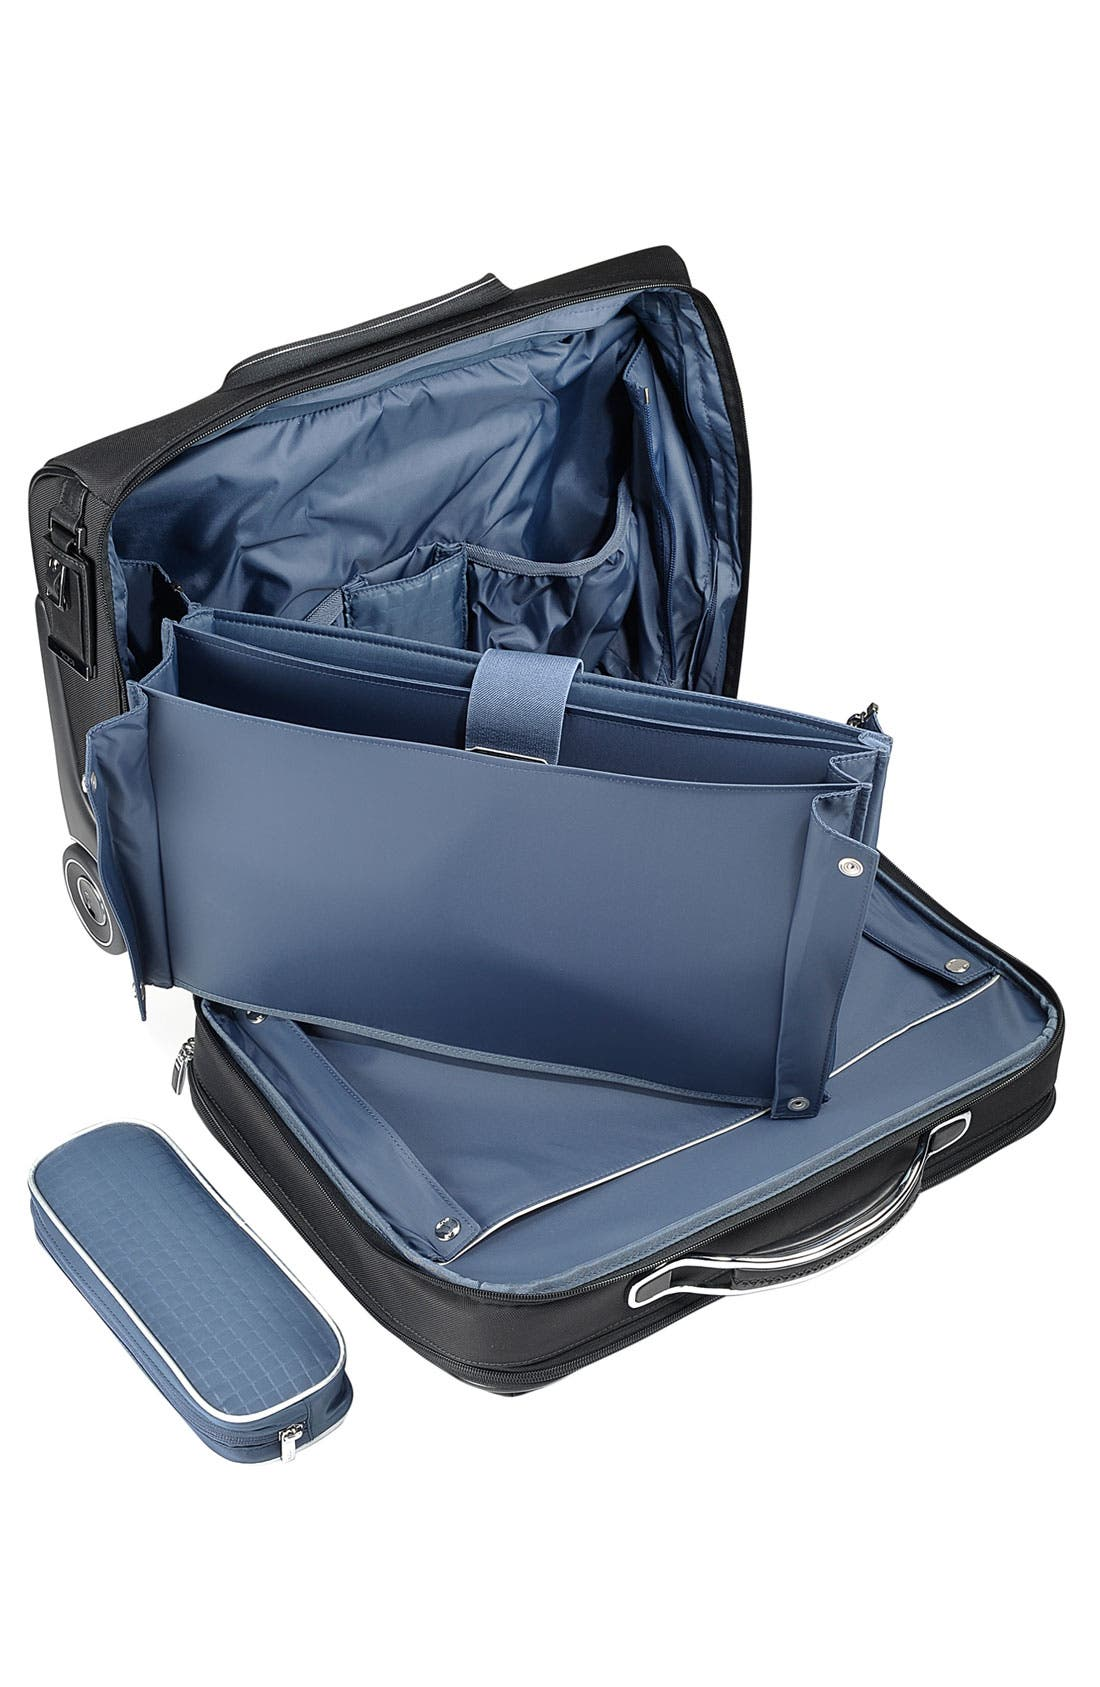 'Arrive - LaGuardia' Wheeled Briefcase with Laptop Insert,                             Alternate thumbnail 3, color,                             Black